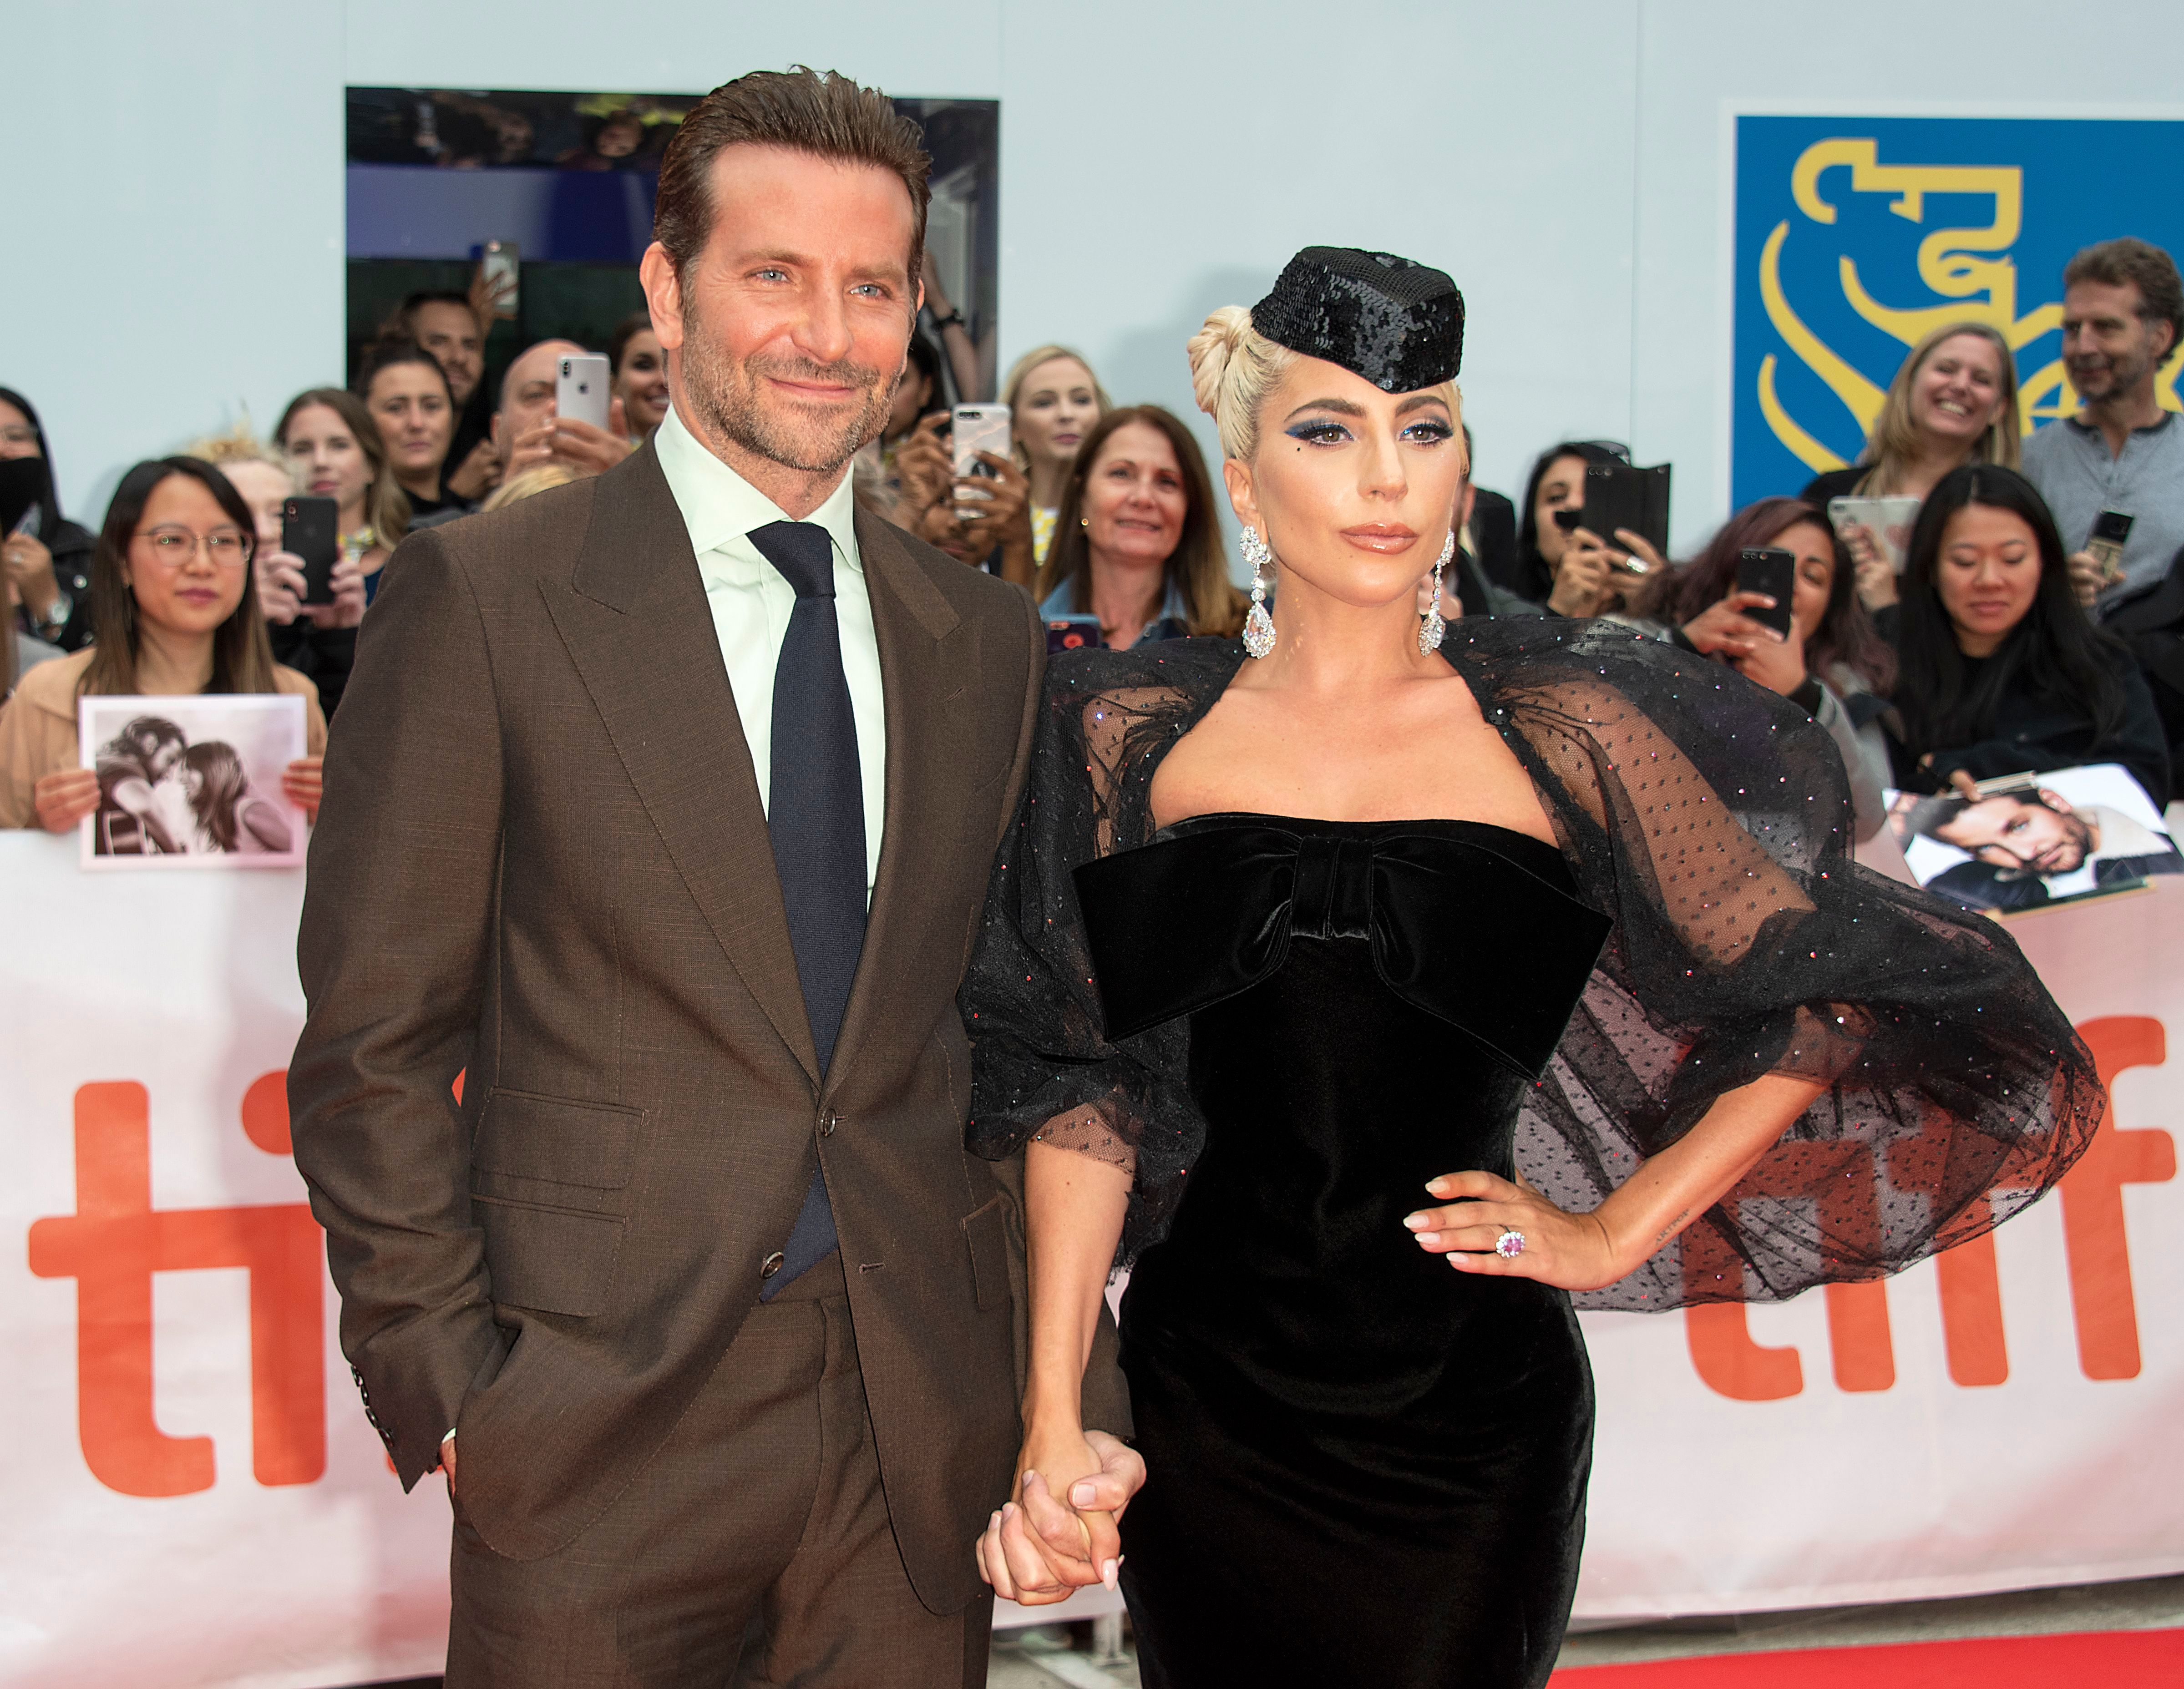 Bradley Cooper and Lady Gaga Duet in a New A Star Is Born Photo